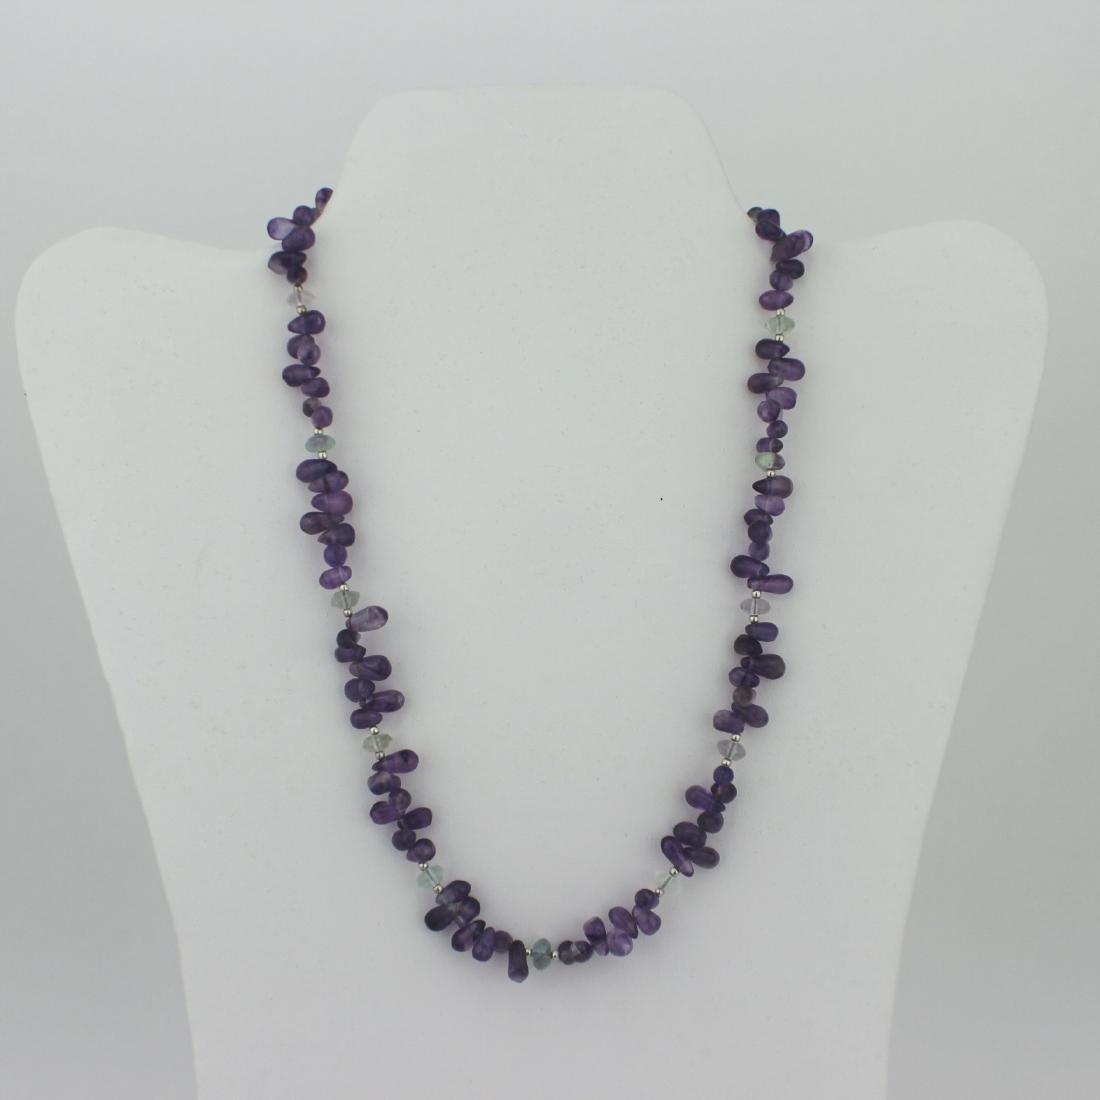 AMETHYST AND FLUORITE BEAD NECKLACE